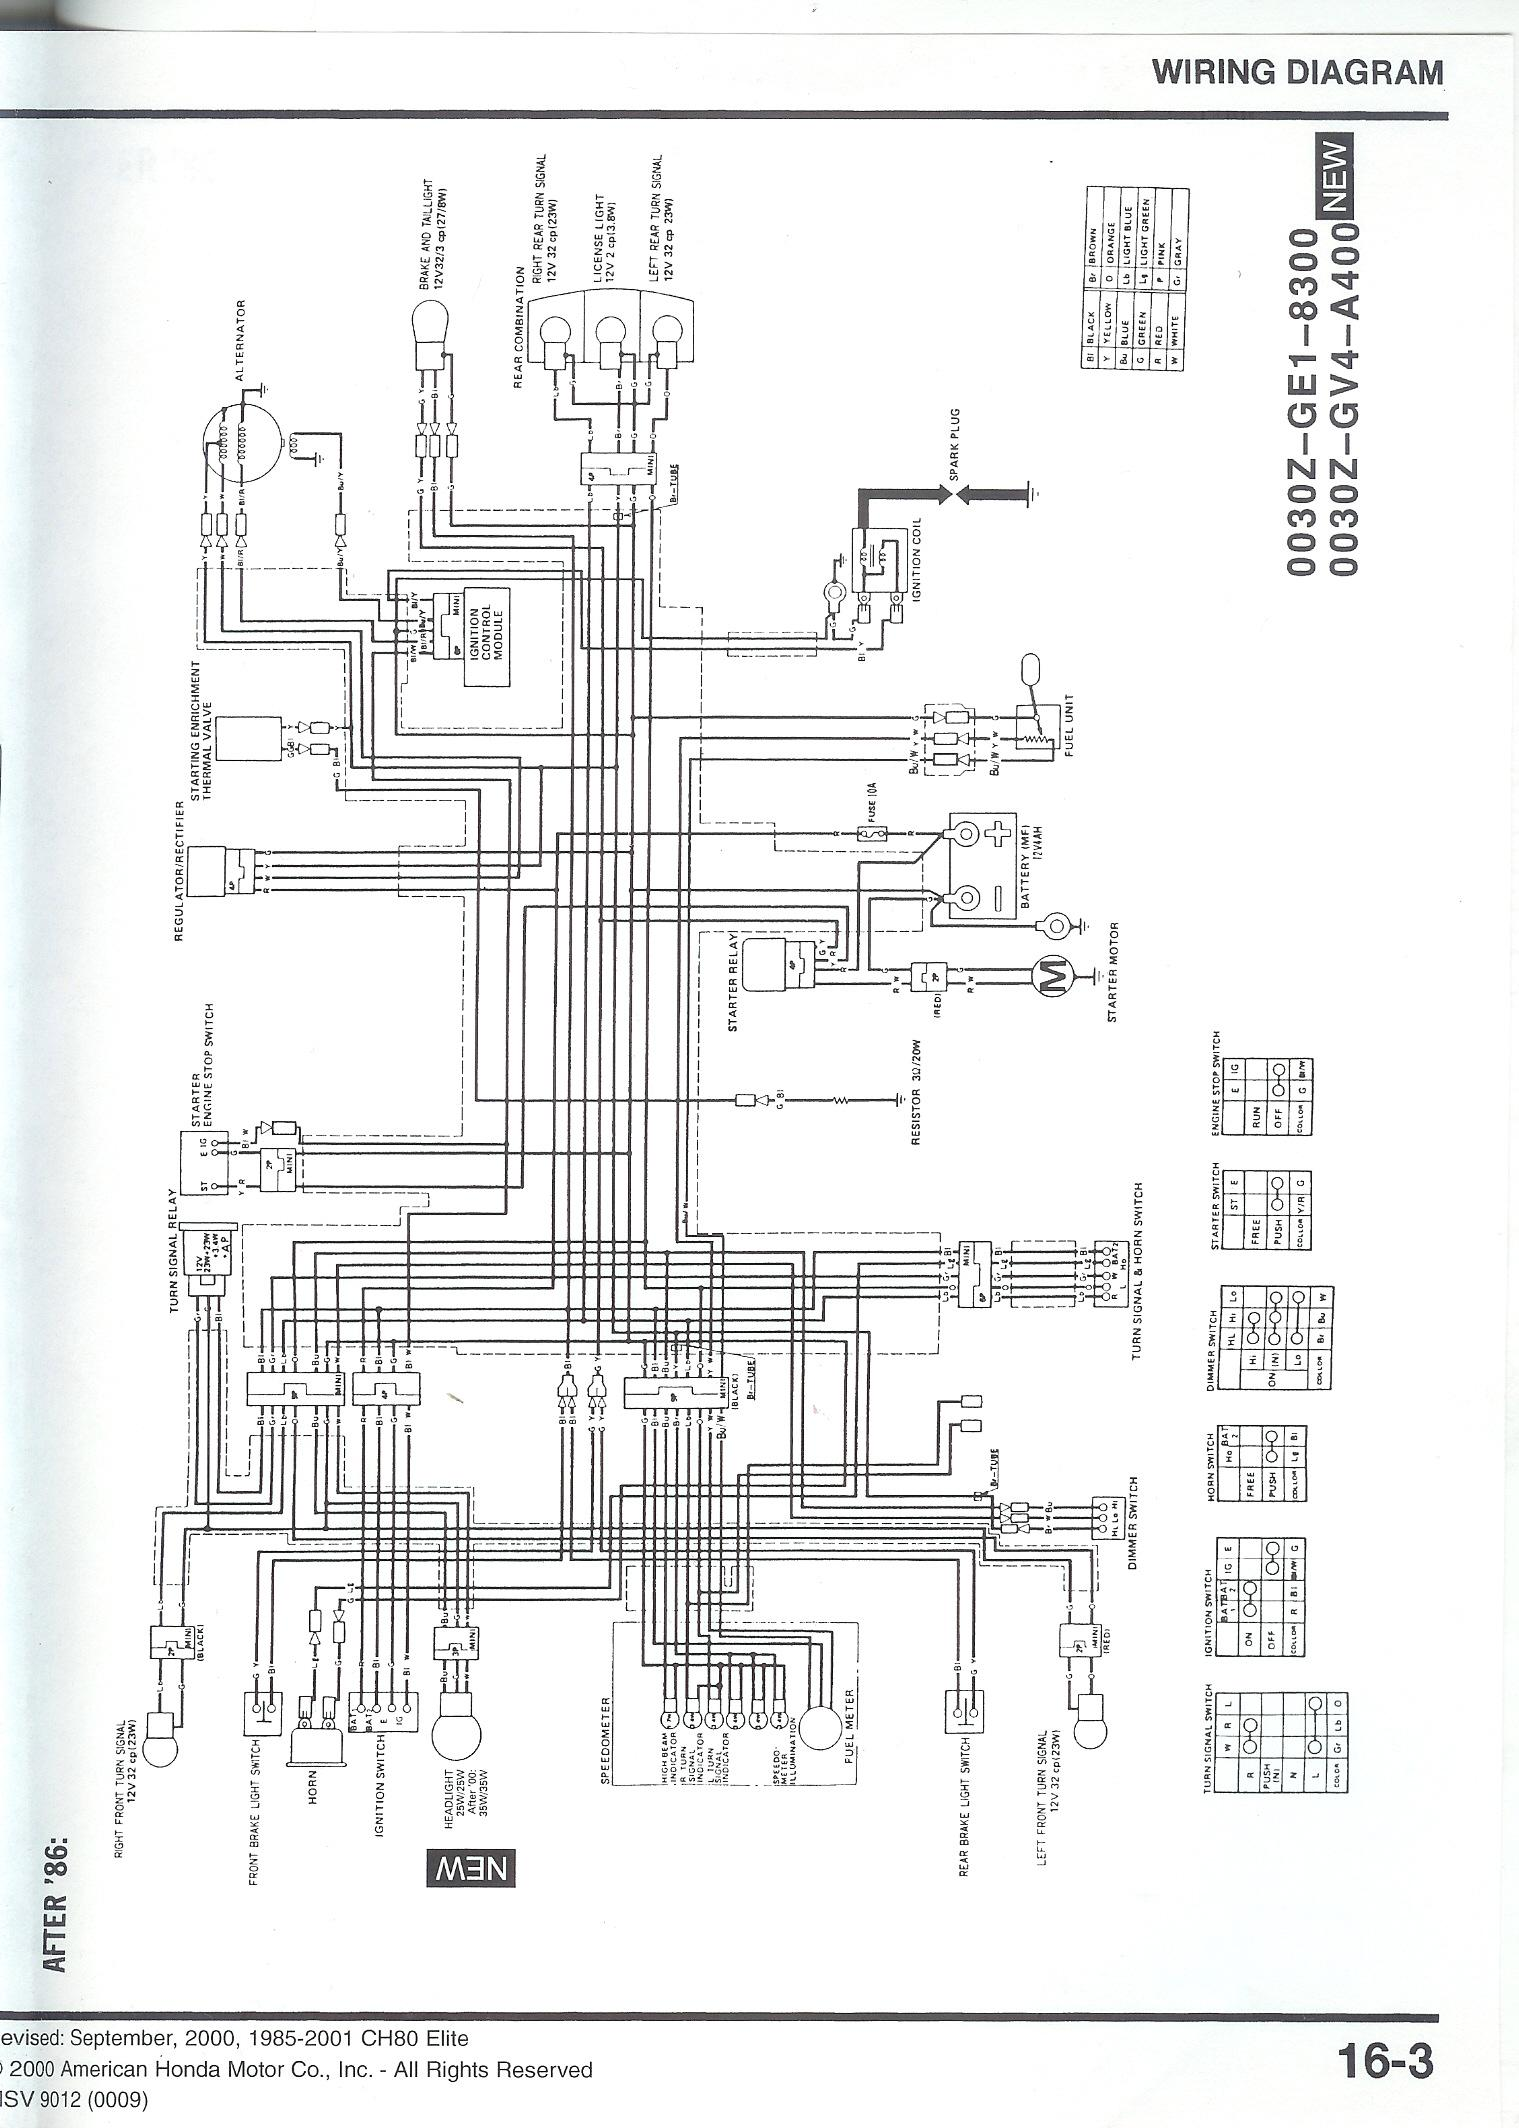 2005 Honda Wiring Diagram